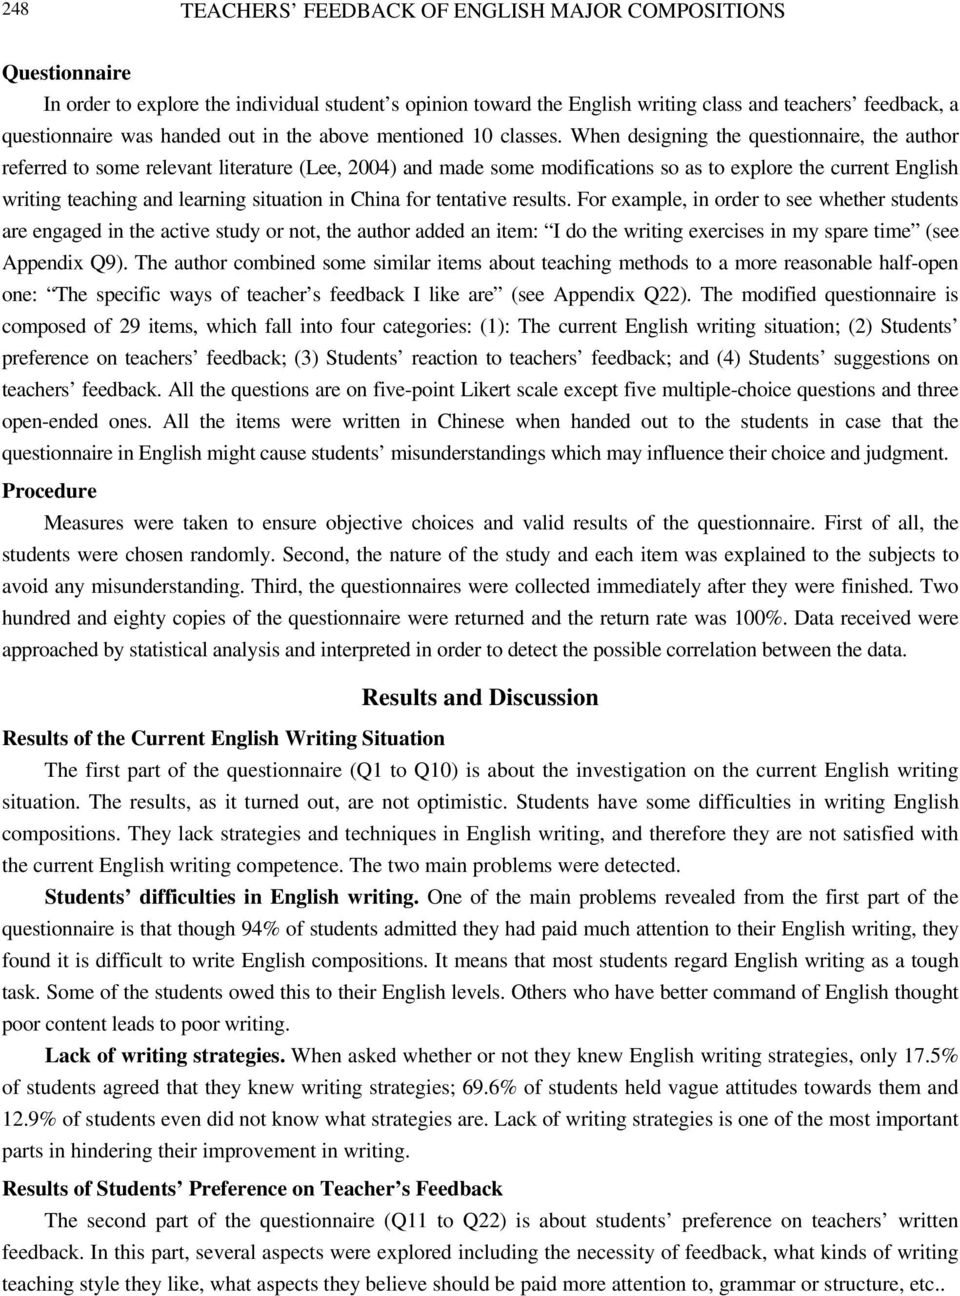 When designing the questionnaire, the author referred to some relevant literature (Lee, 2004) and made some modifications so as to explore the current English writing teaching and learning situation